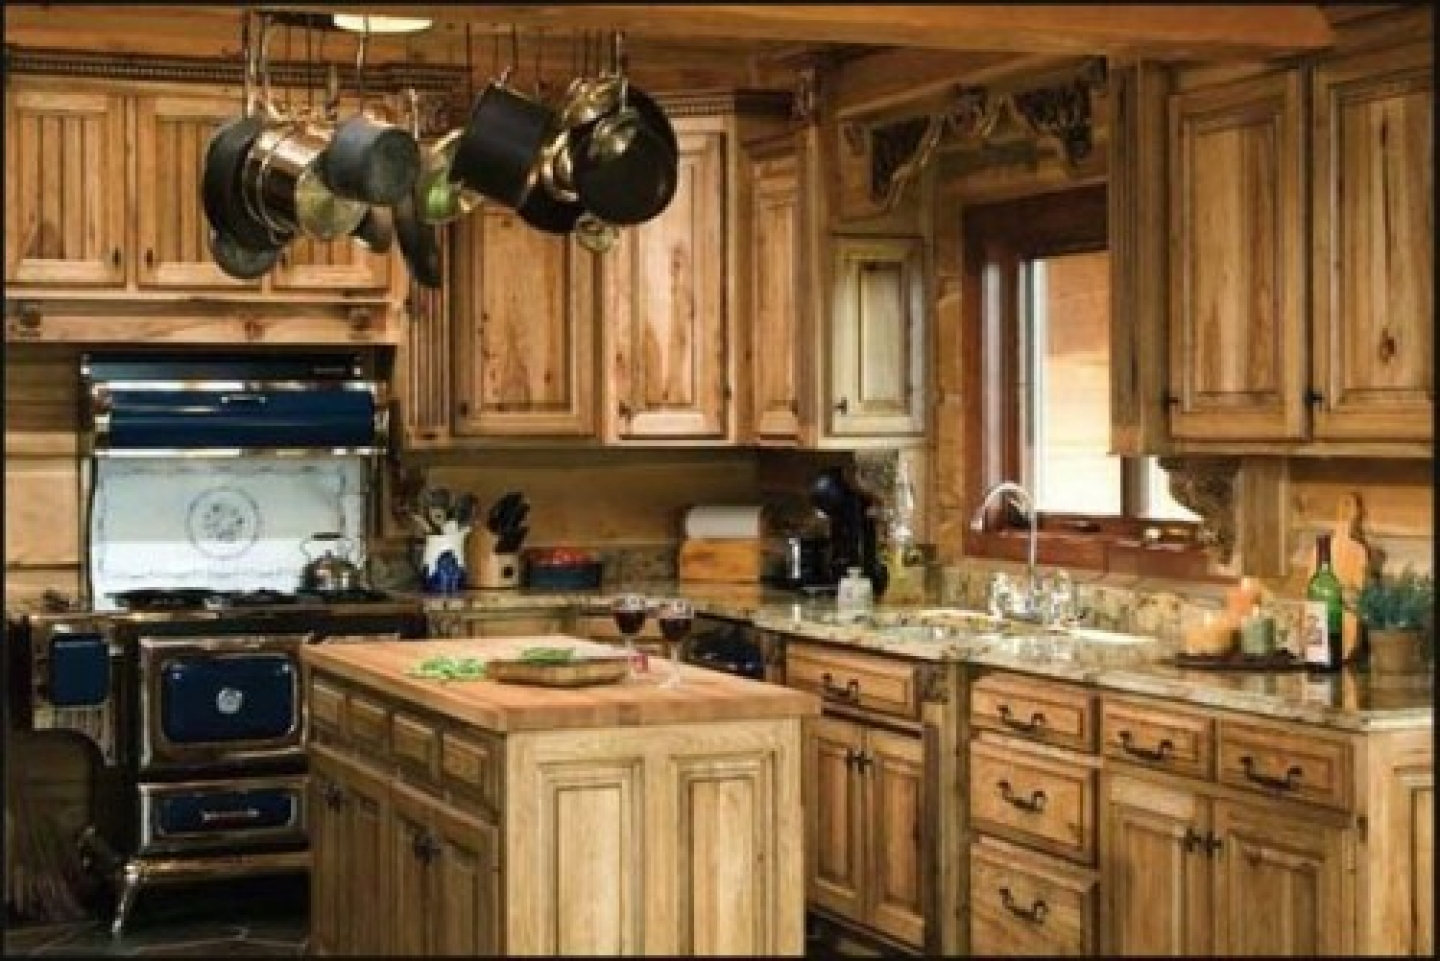 Best Rustic Kitchen With Wooden Furniture And Cabinet 3059 House Decoratio